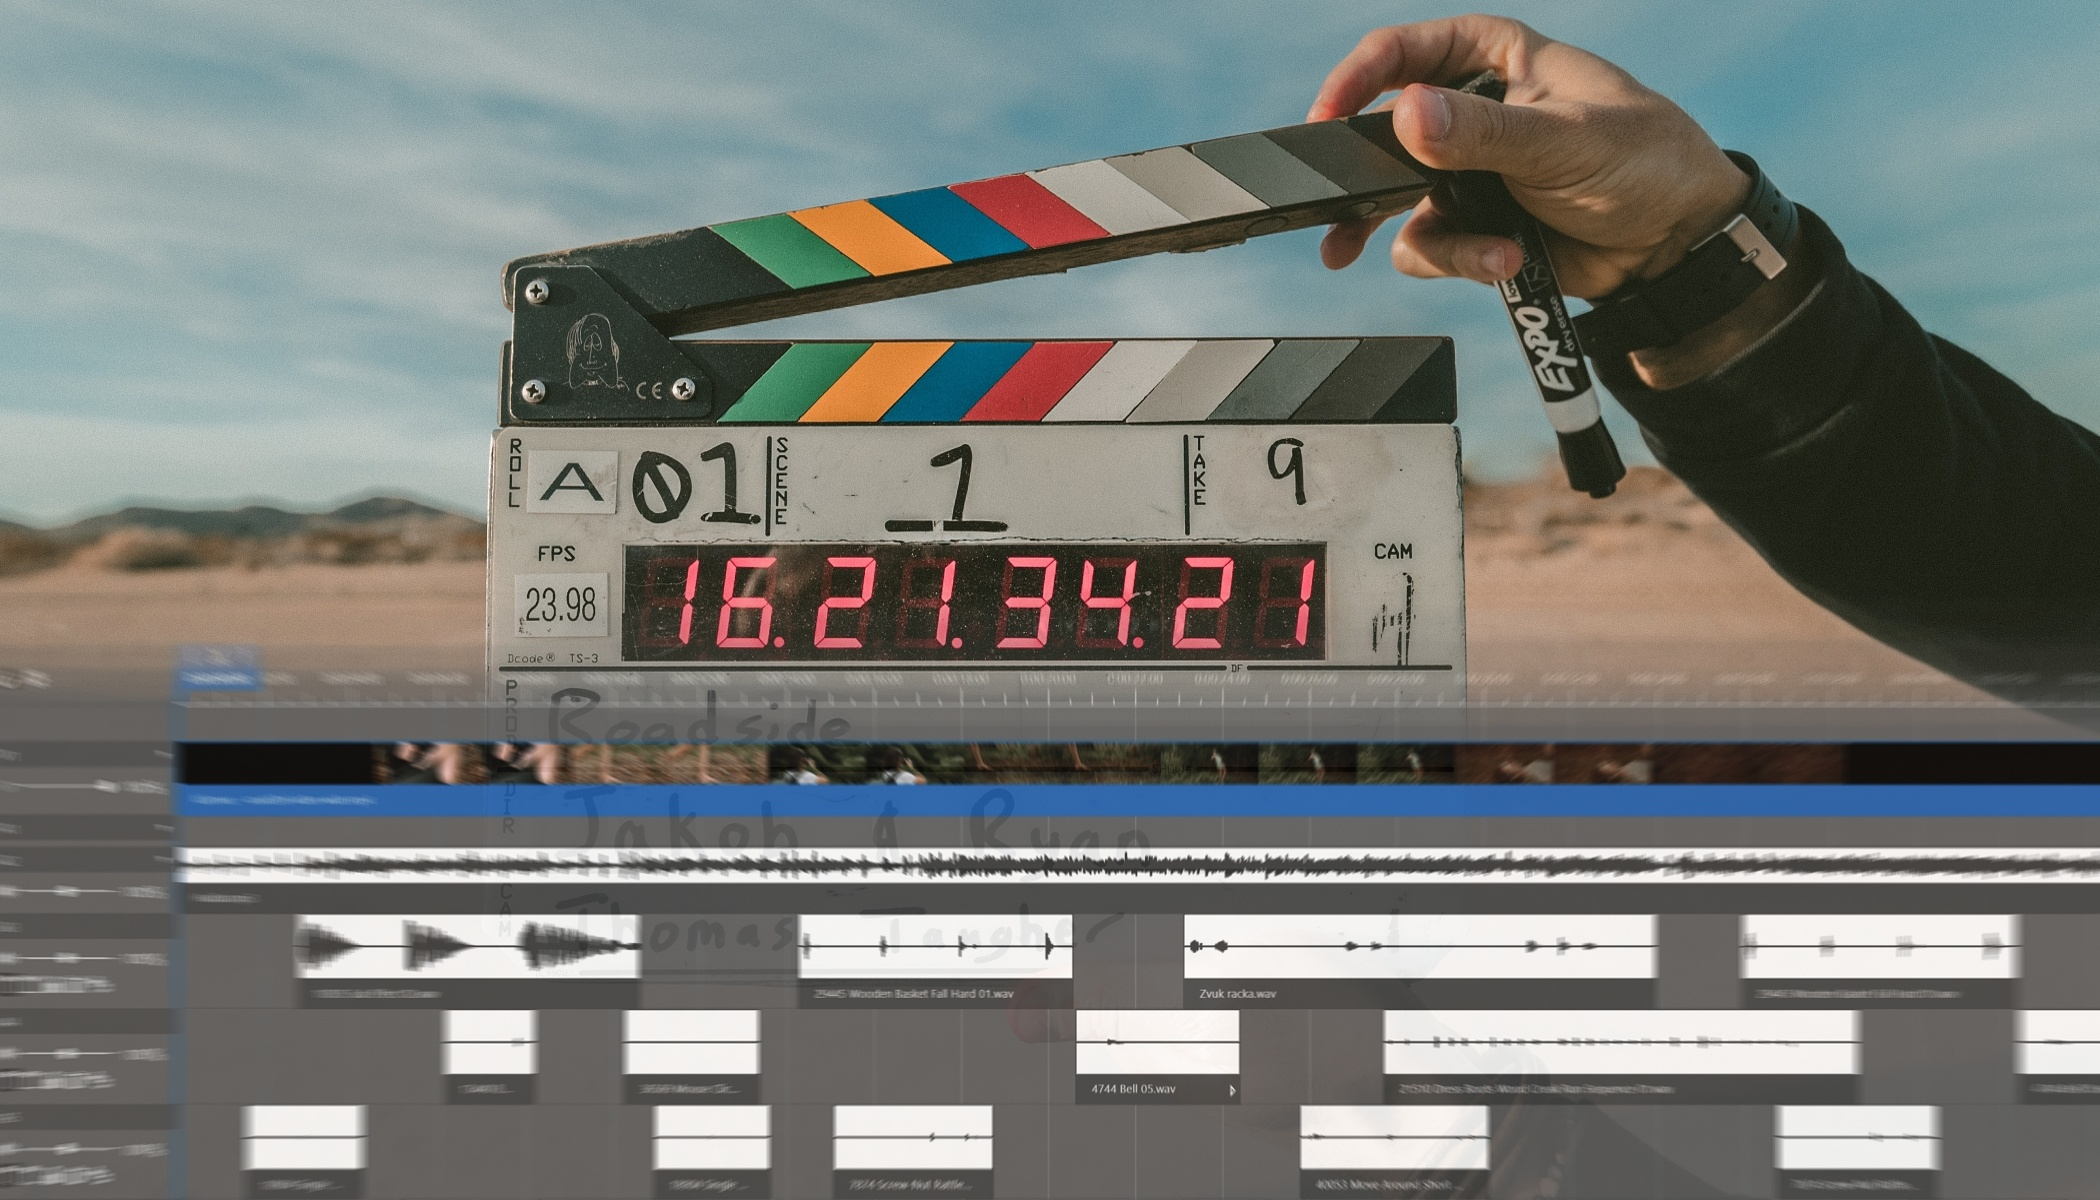 Video and Sound Design: Improve Your Videos by Adding Audio